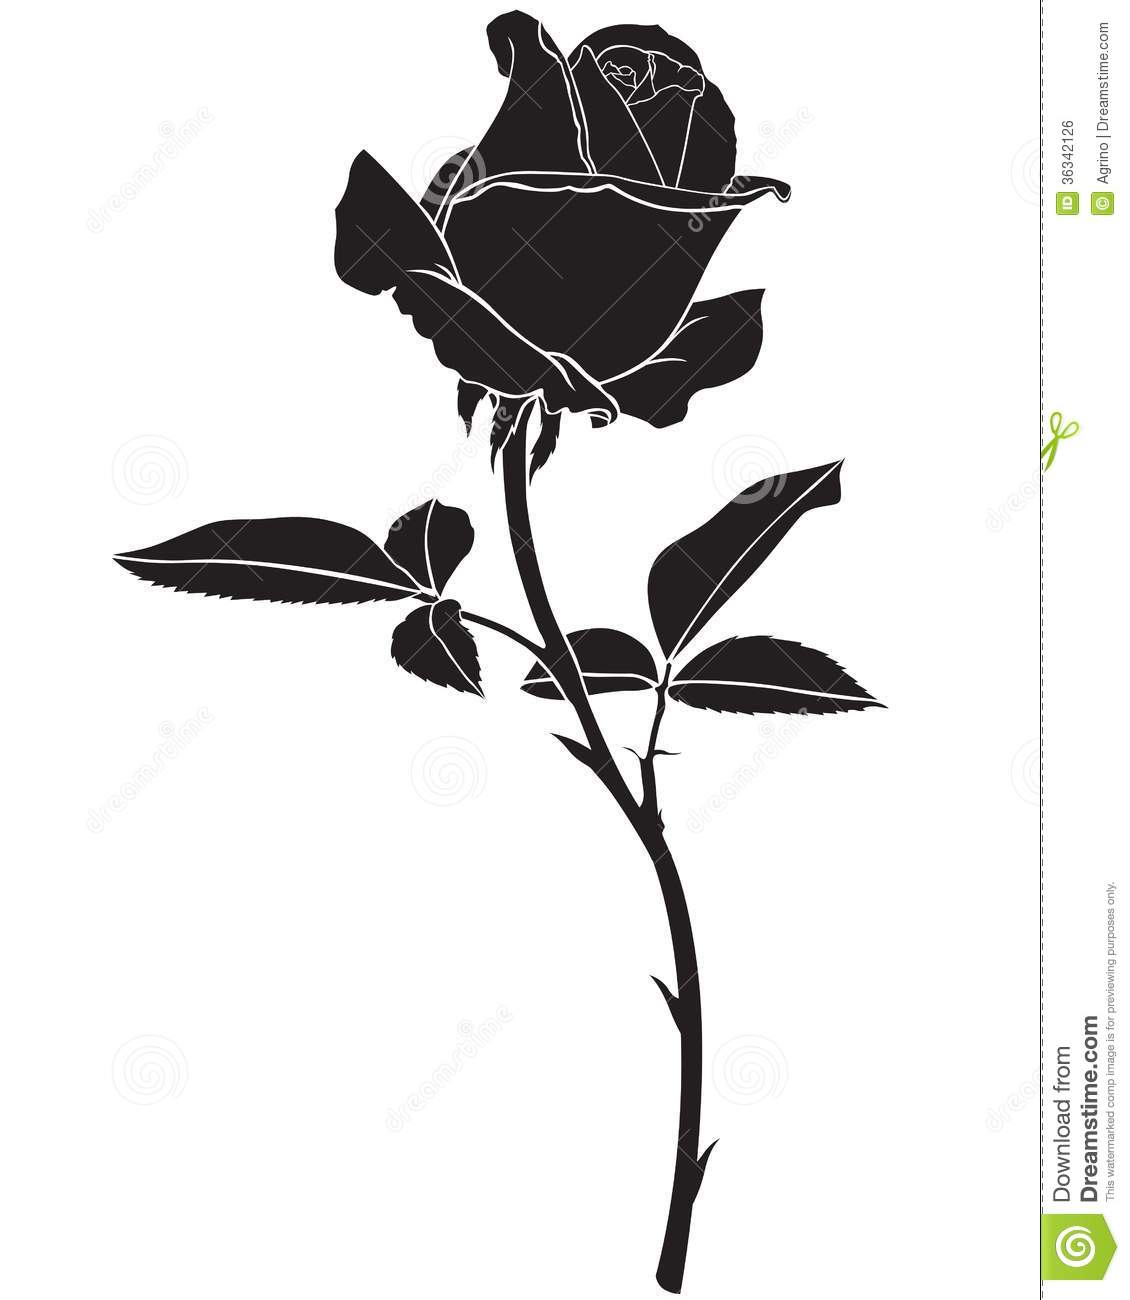 Silhouette Rose Flower Royalty Free Stock Image - Image: 36342126